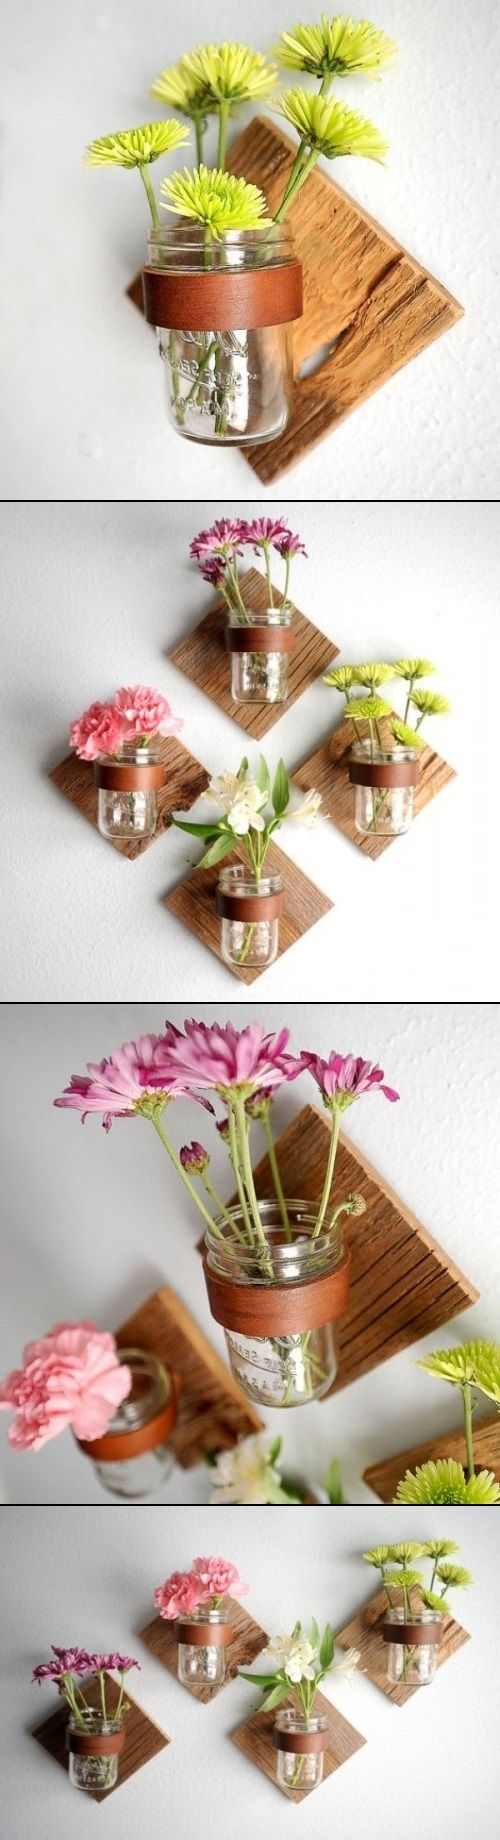 DIY Rustic Mason Jar Sconce. No how-to; but a cool idea.